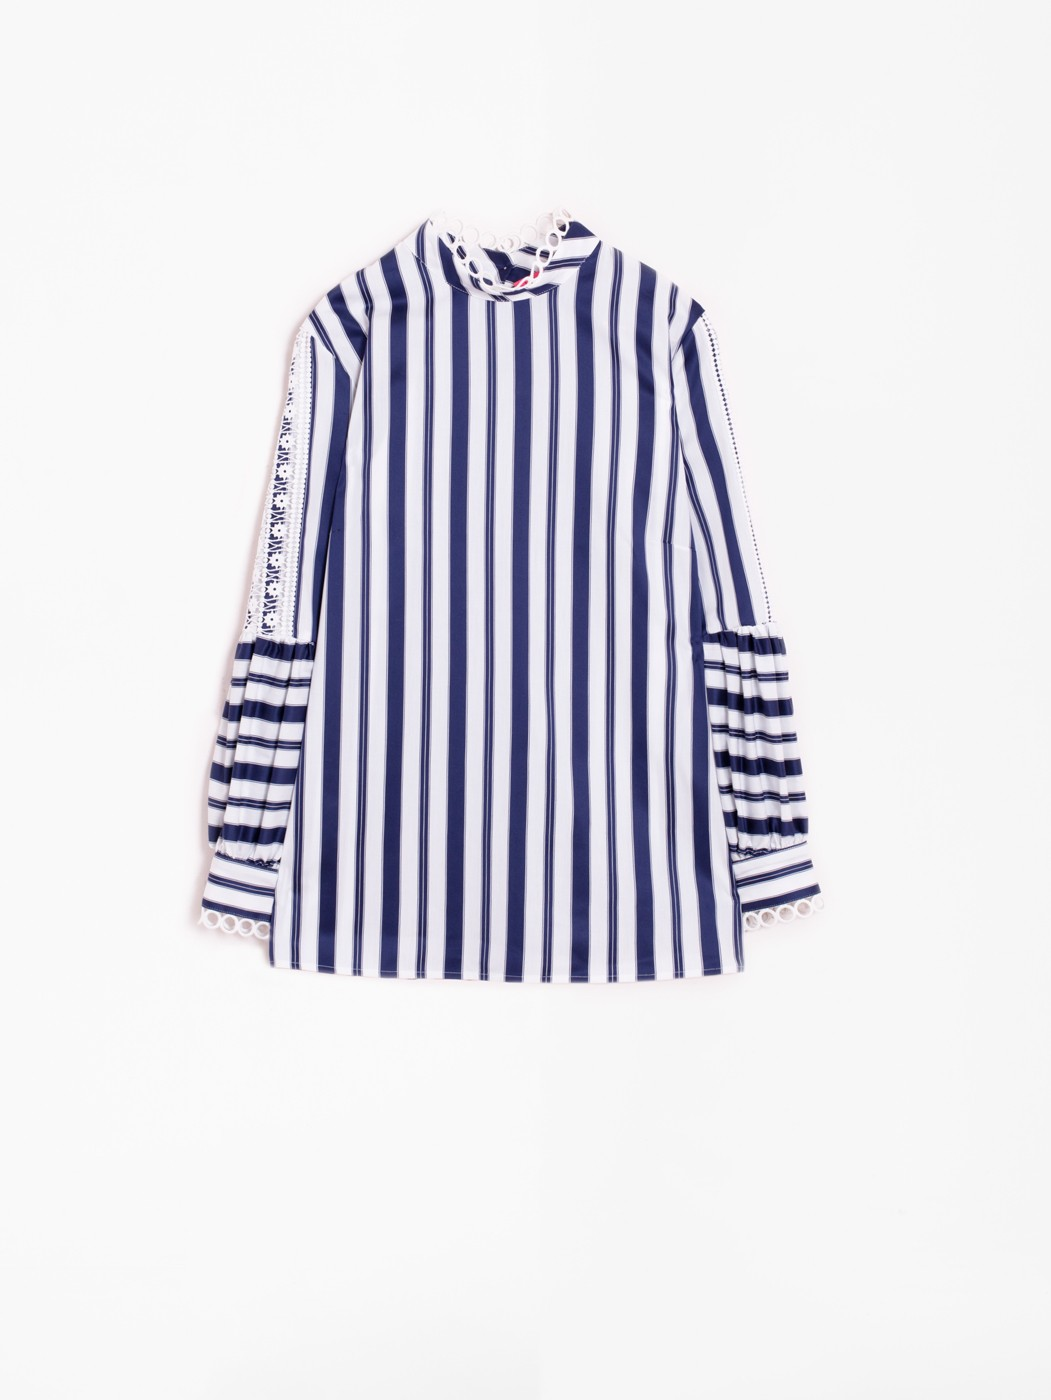 LOLA SHIRT NAVY STRIPES